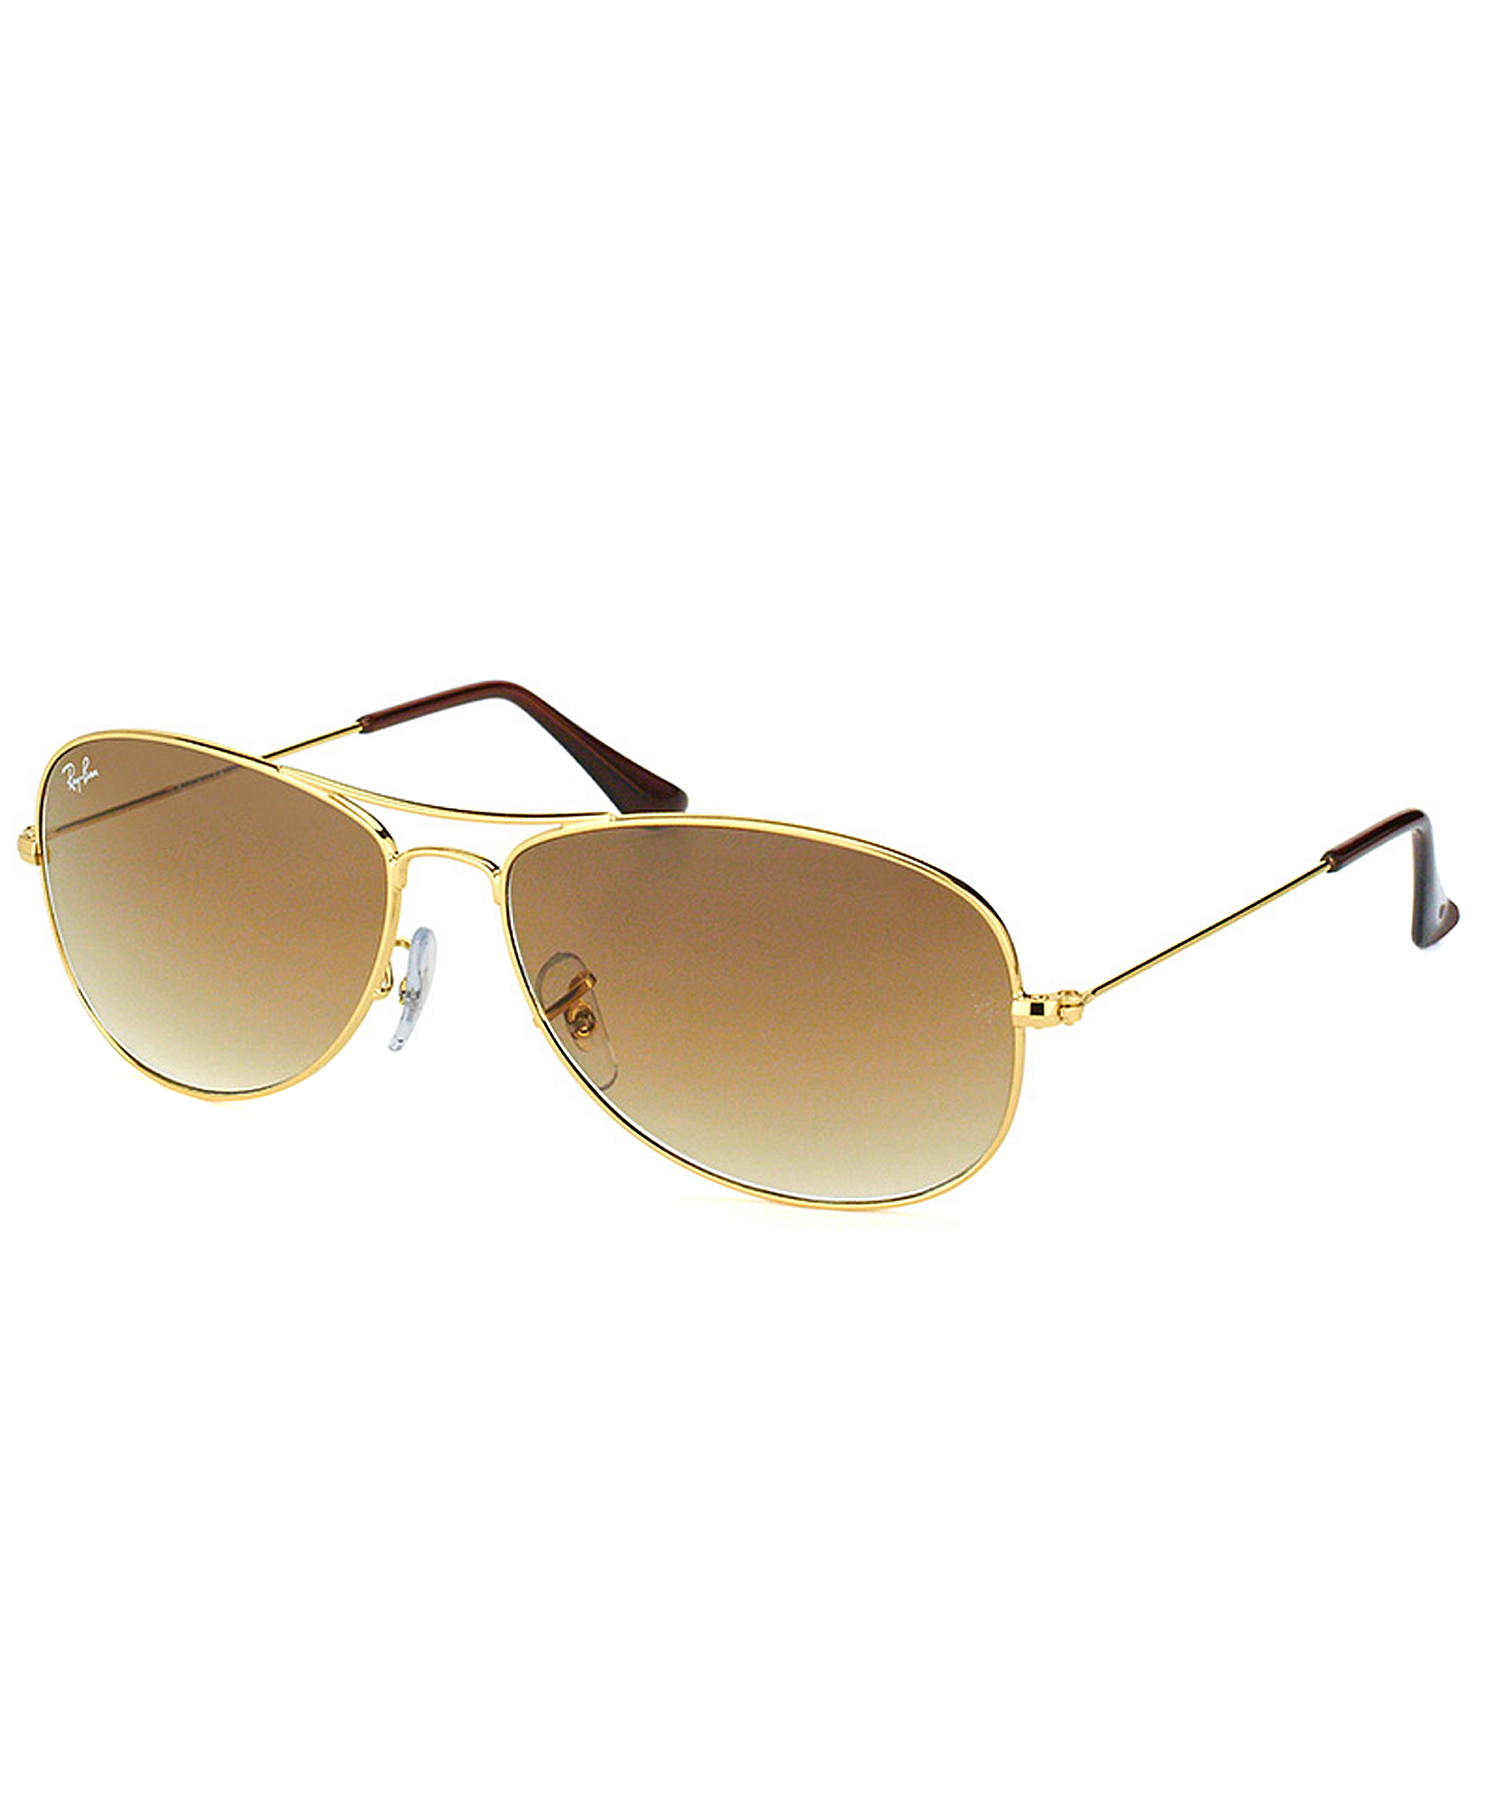 ray ban cockpit aviator metal sunglasses in metallic gold. Black Bedroom Furniture Sets. Home Design Ideas